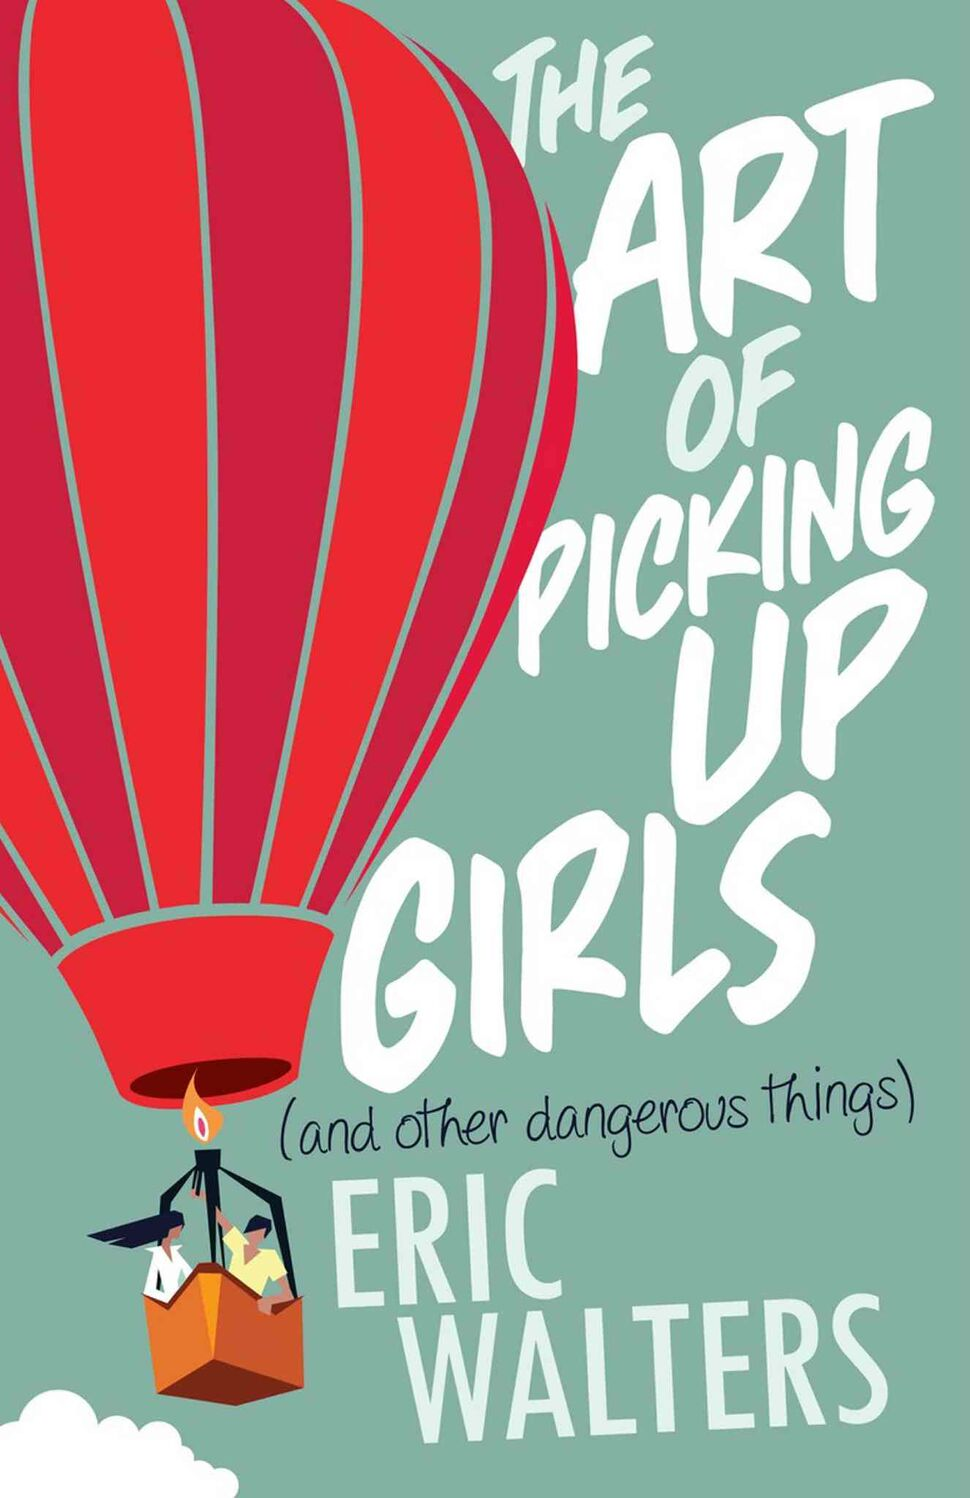 <h3>The Art of Picking Up Girls (And Other Dangerous Things)</h3>  By Eric Walters     <strong>With sheer ingenuity, clever dialogue and wholesome philosophy, this young-adult novel by prolific author Eric Walters is a sure-fire winner for ages 12 and up as Graham learns the basics of how to pick up girls.</strong>  — Helen Norrie